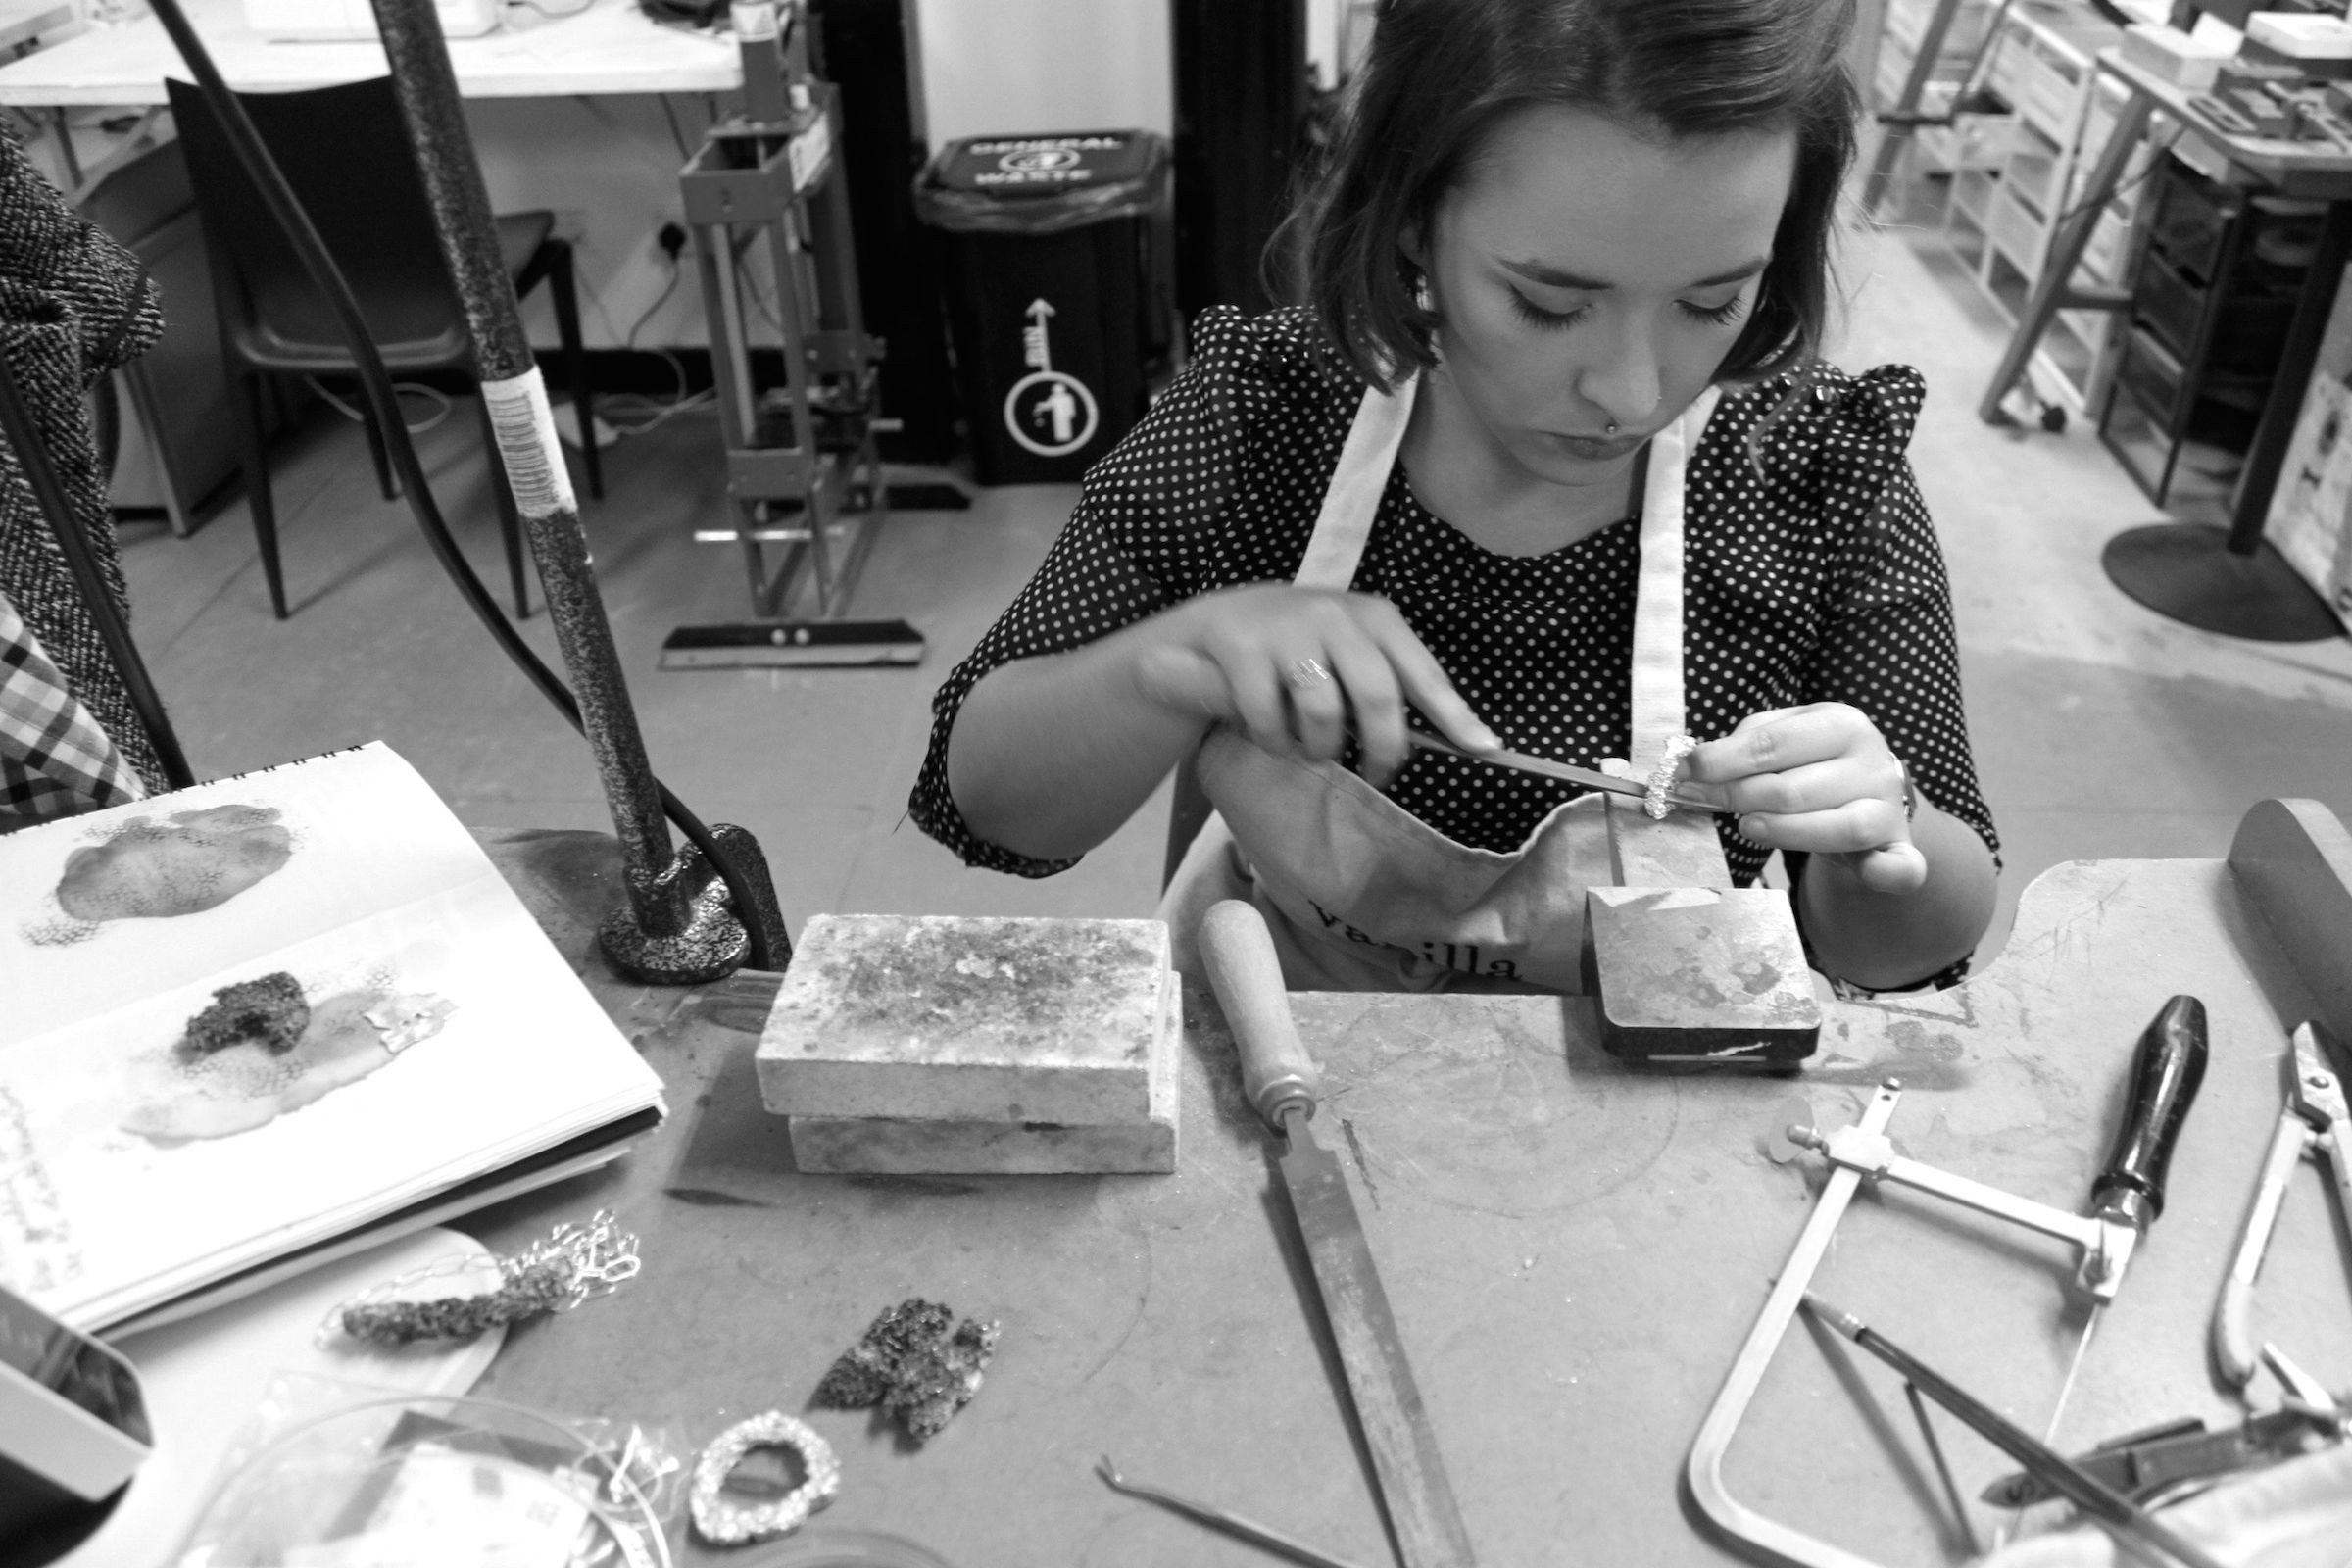 Sophie making her pieces in the workshop